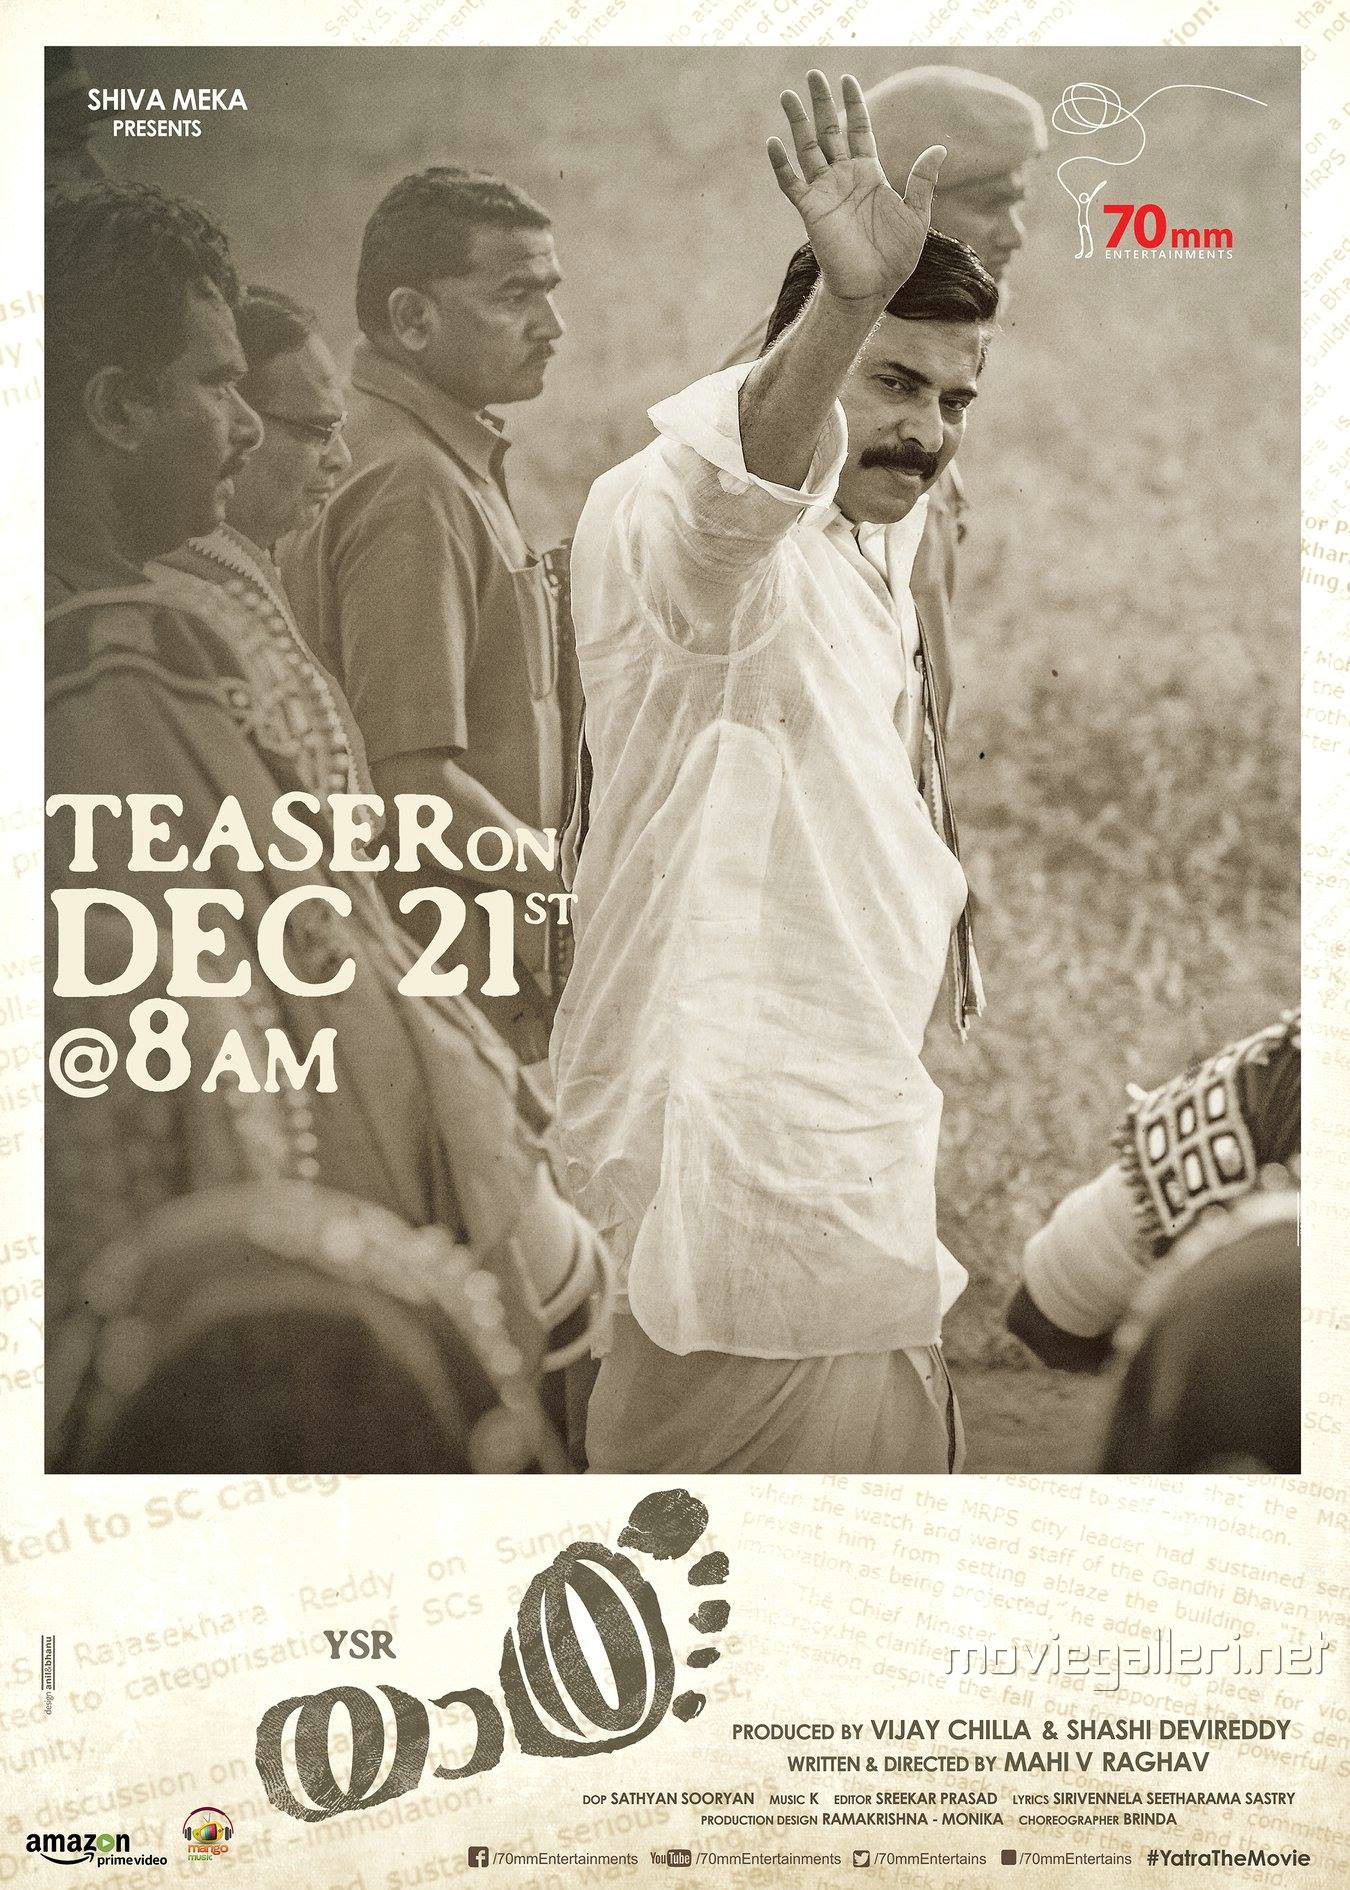 Mammootty Yatra malayalam teaser on December 21st Posters HD